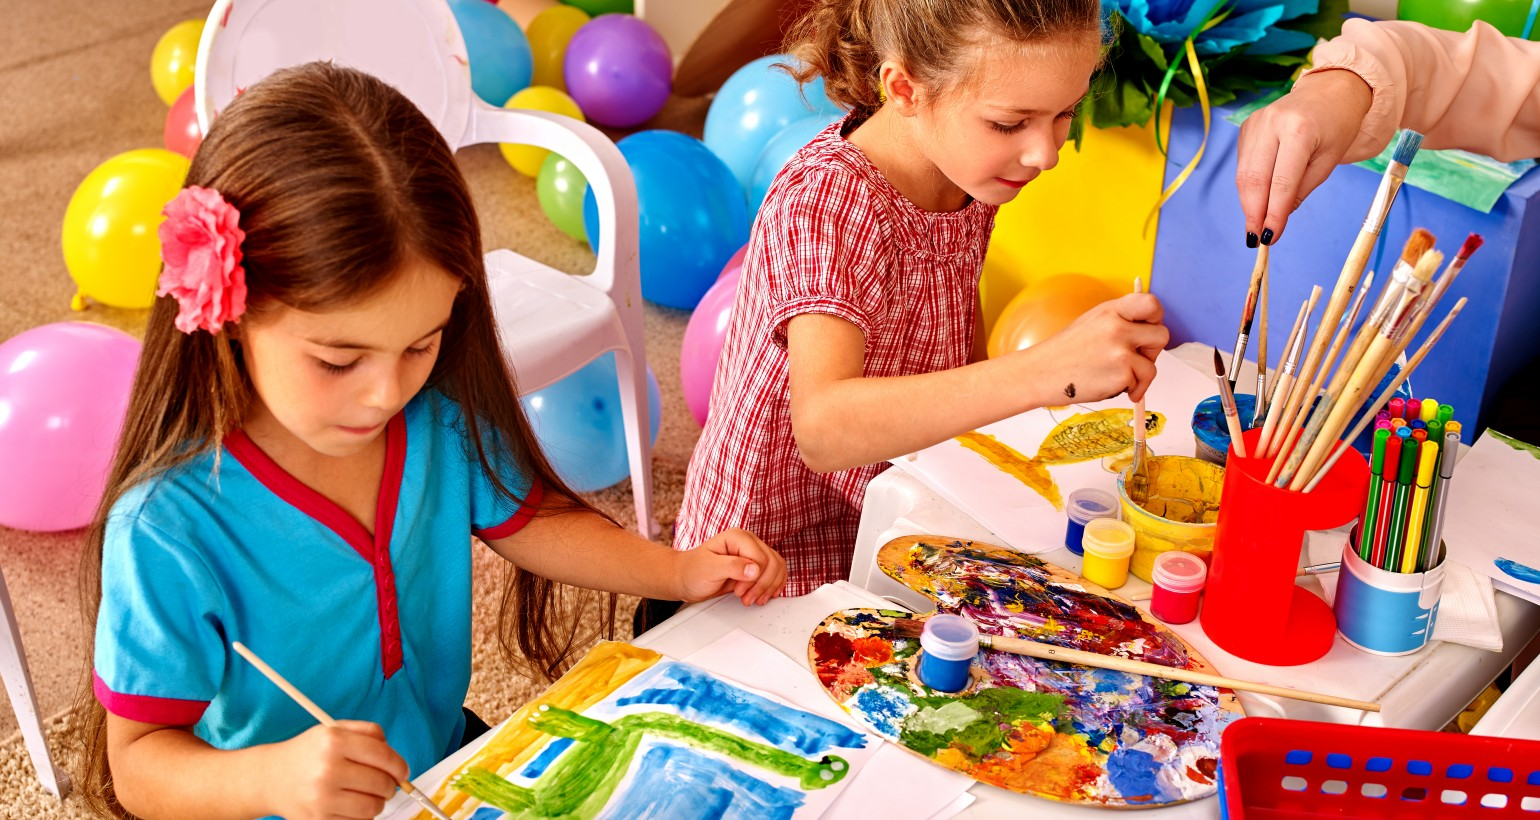 CHILDREN'S ART CLASSES – Tues – Sat